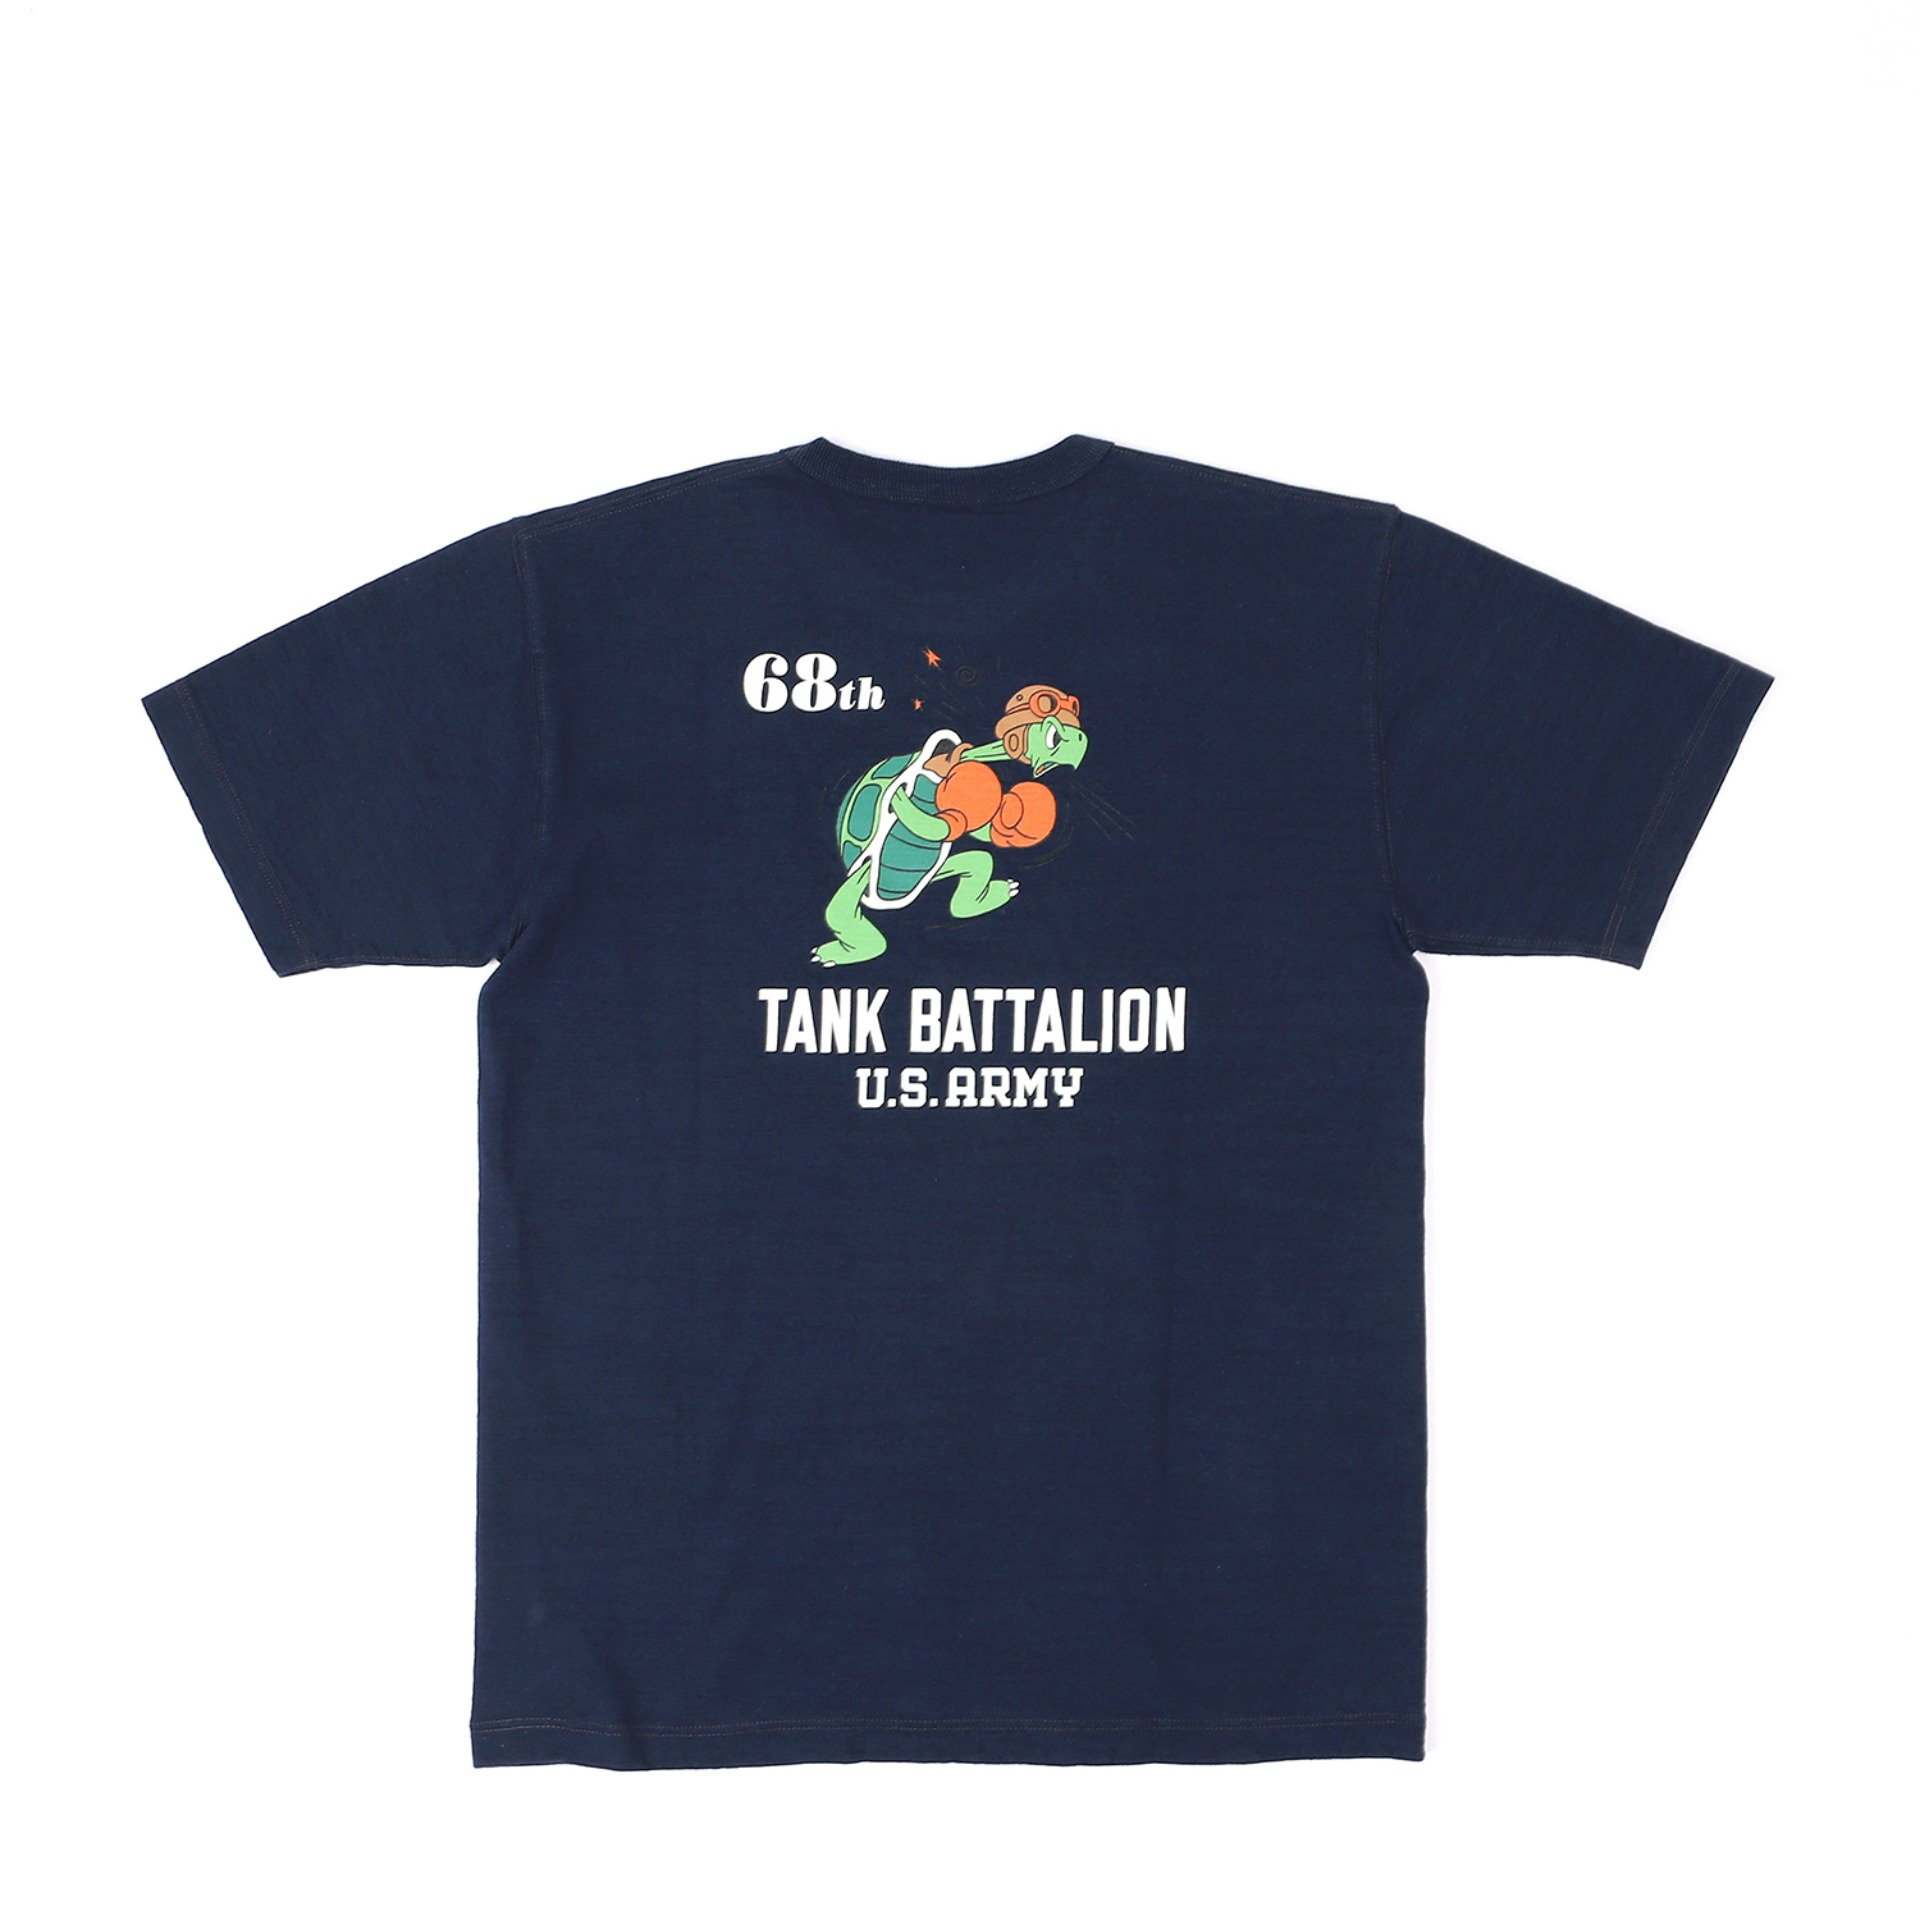 LOOPWHEEL T-SHIRT 68th TANK BATTALION (Navy)